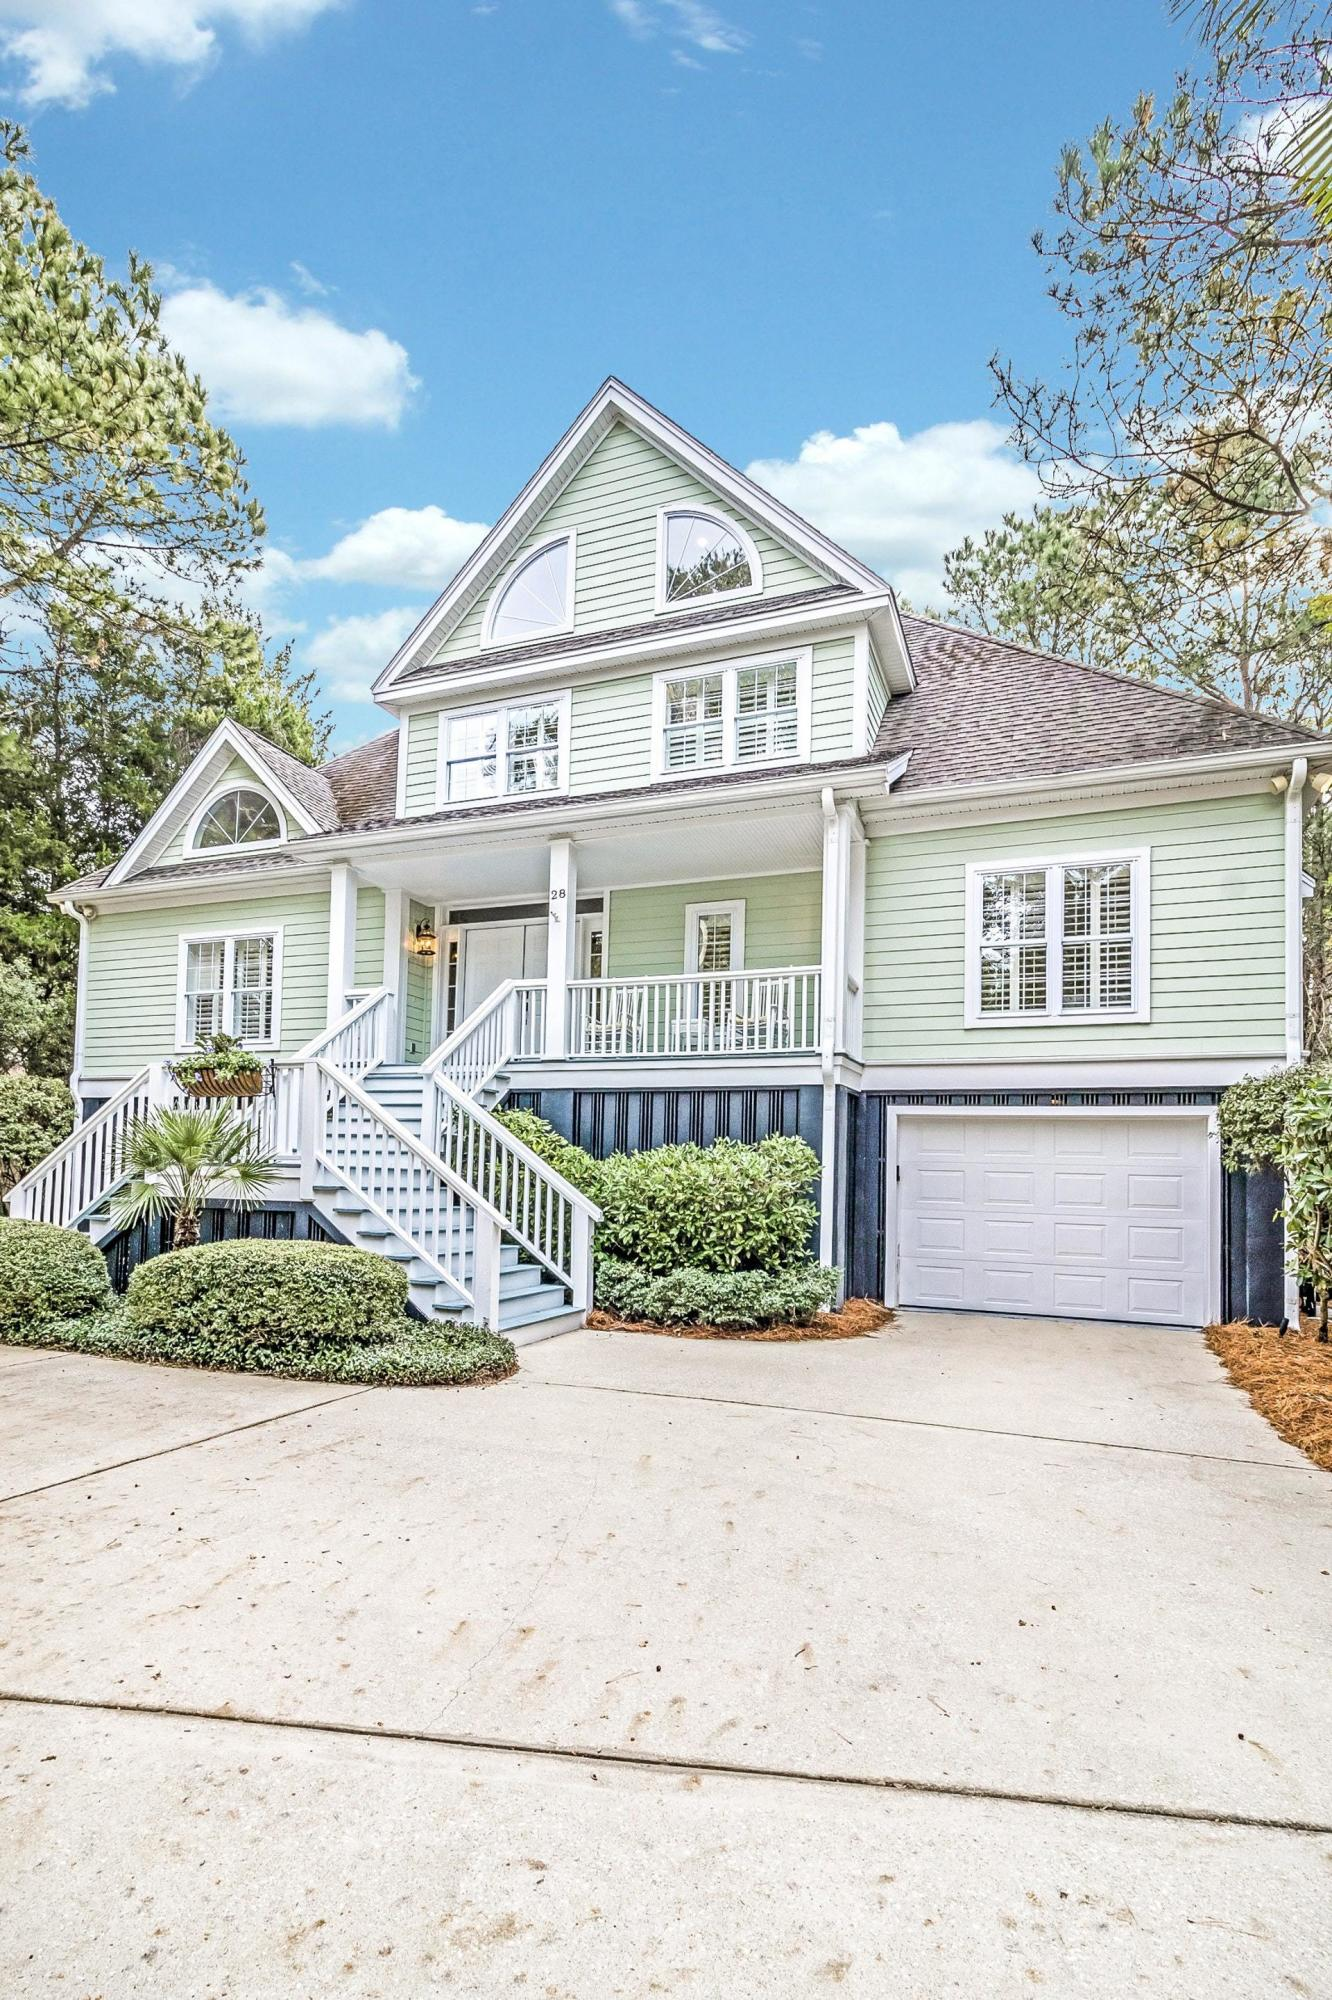 Wild Dunes Homes For Sale - 28 Edgewater Alley, Isle of Palms, SC - 1